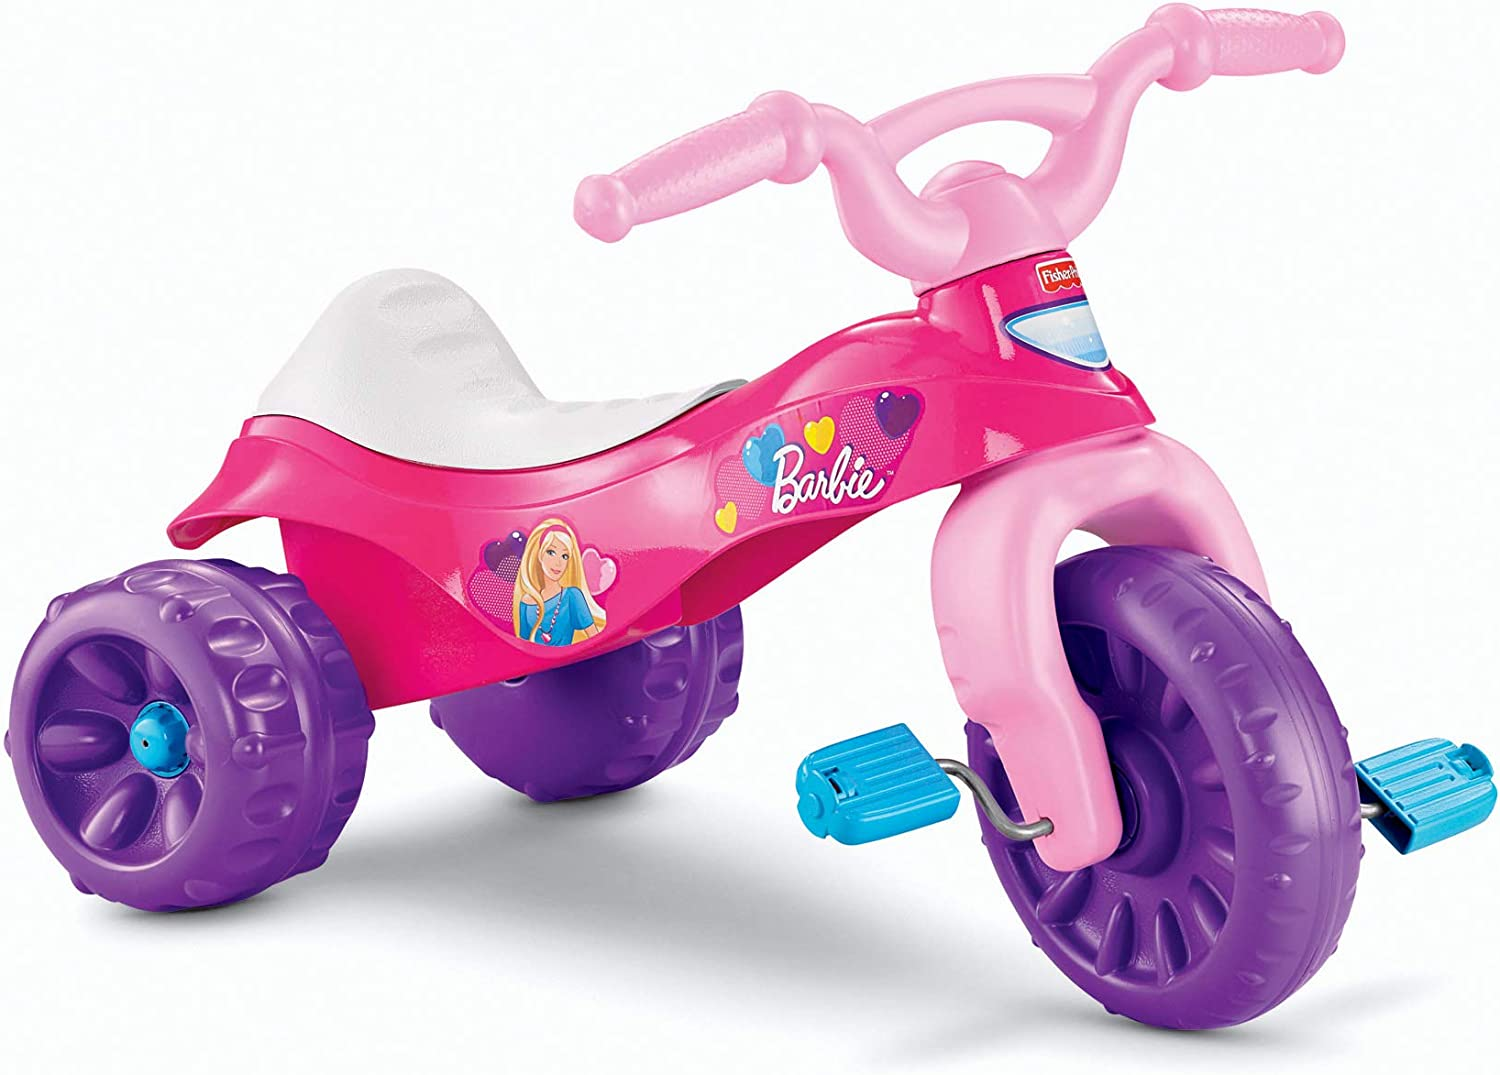 50+ Best Gift Ideas & Toys for 2 Year Old Girls Should You Know 20